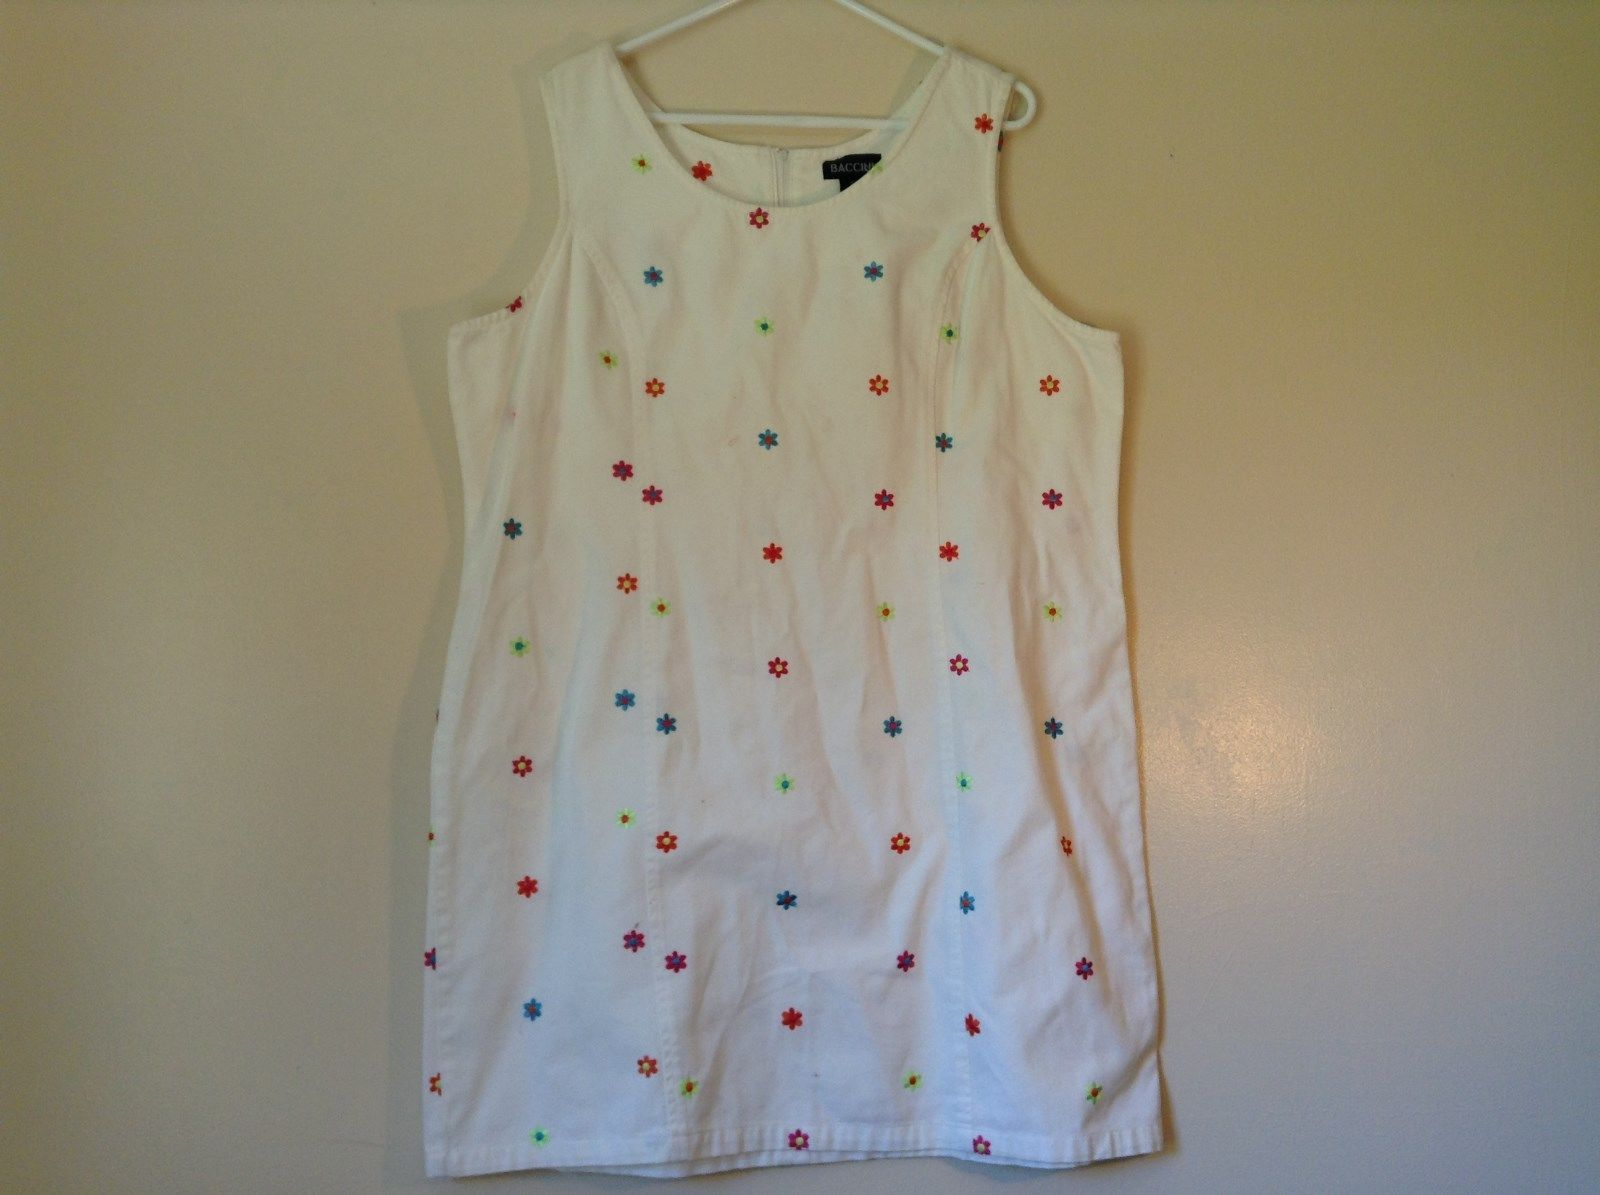 White Baccini Cotton Size 18W Sleeveless Top Bright Colored Flowers